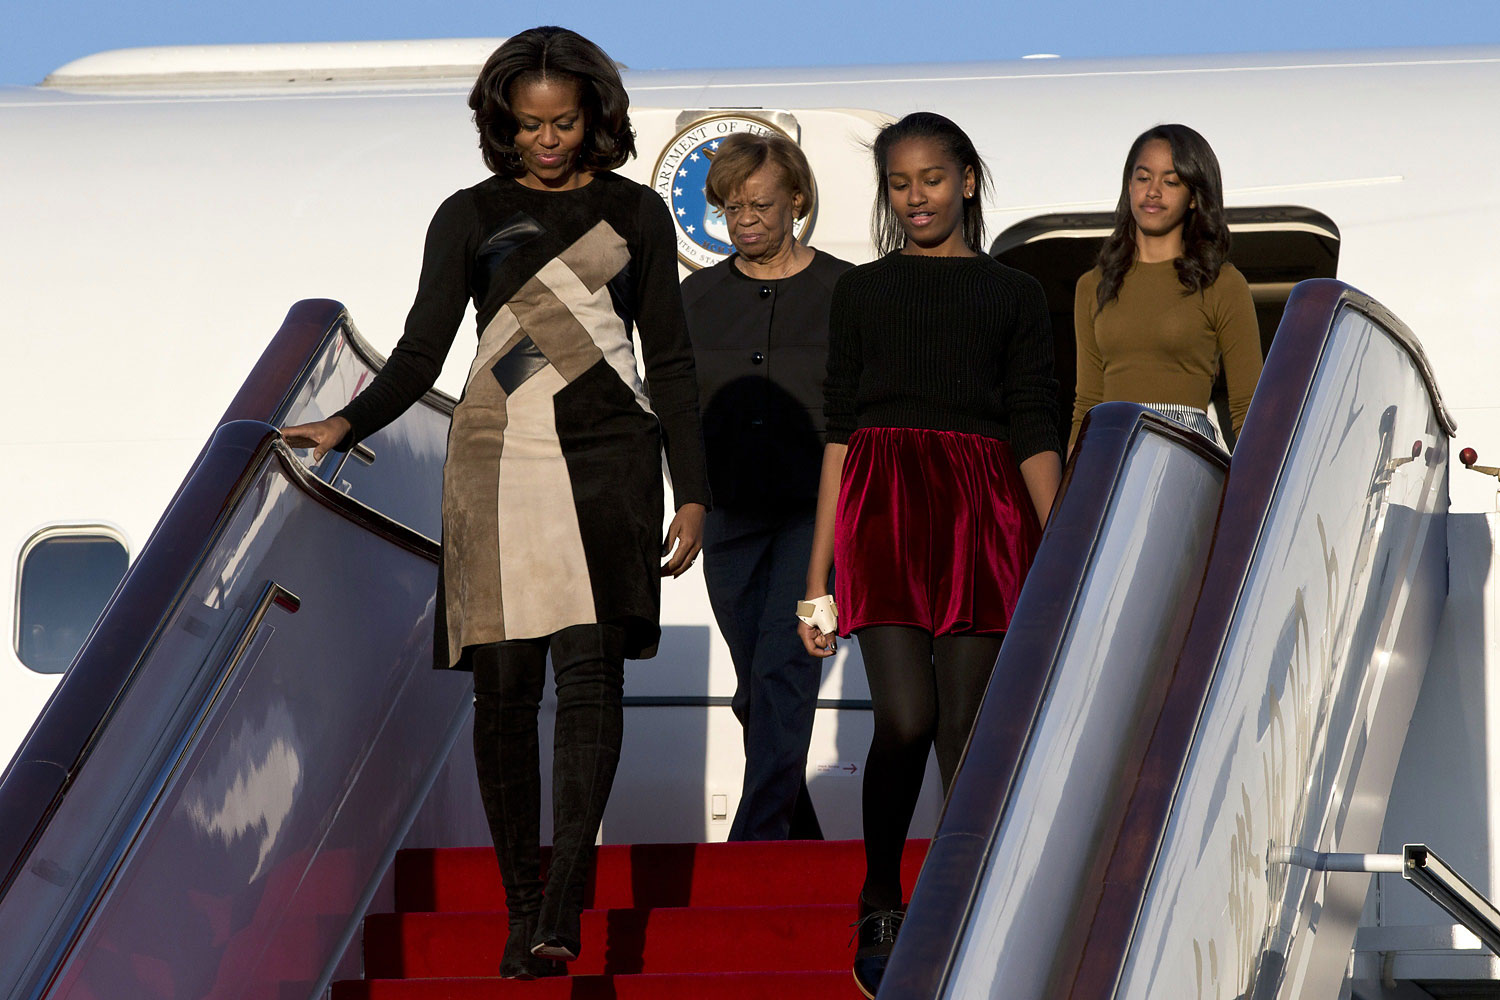 Michelle Obama, her daughters Sasha and Malia, and Michelle Obama's mother Marian Robinson exit their plane upon arrival at Beijing's Capital International Airport on March 20, 2014.